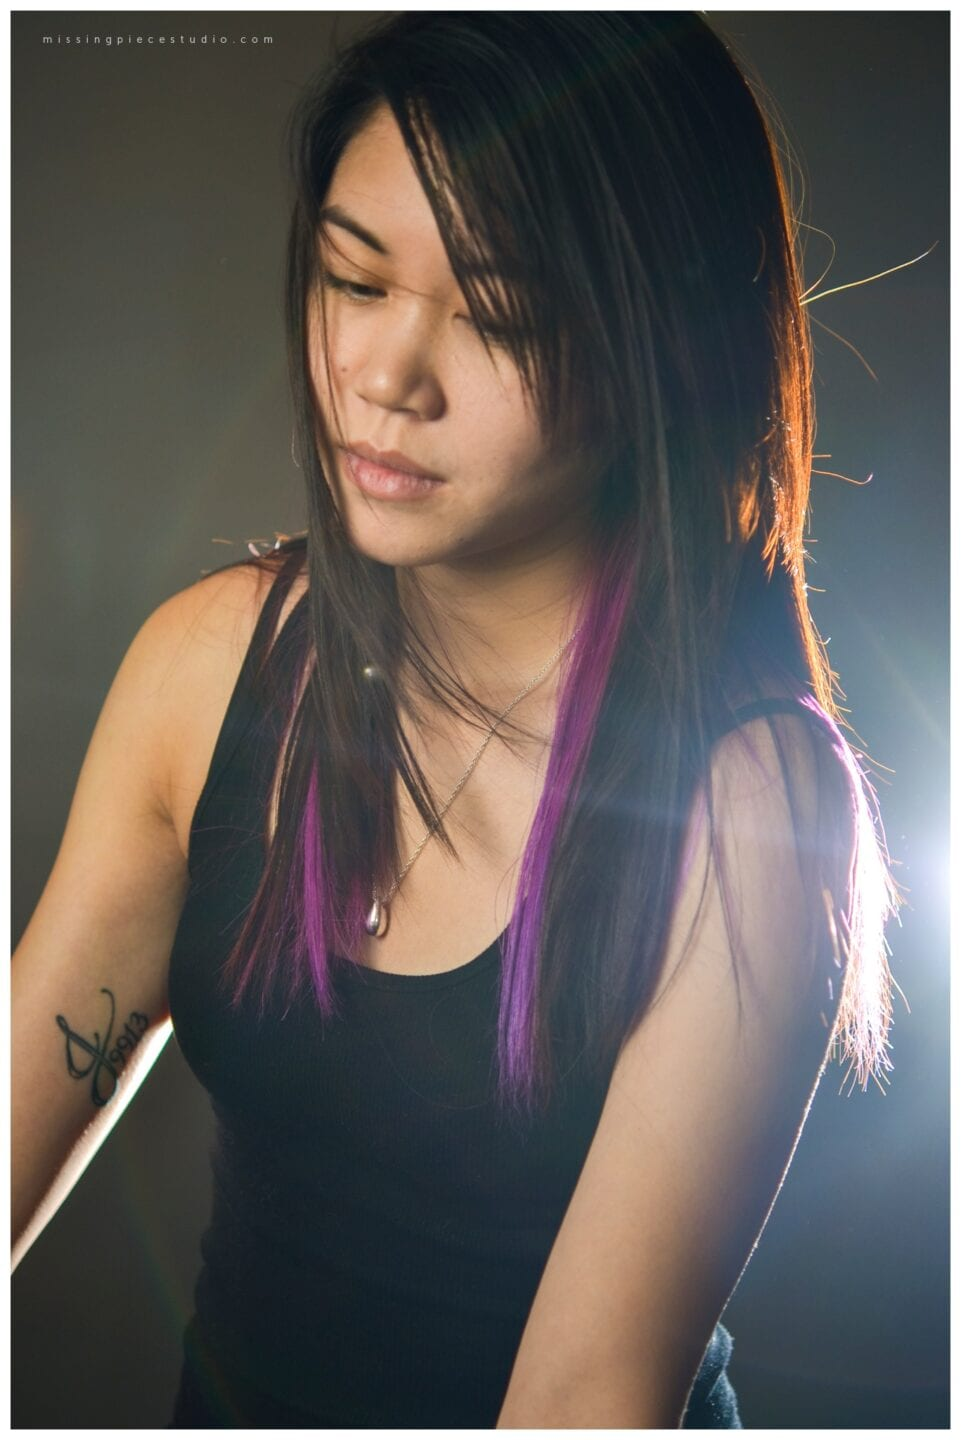 Female model with purple streaks and a tattoo on right arm